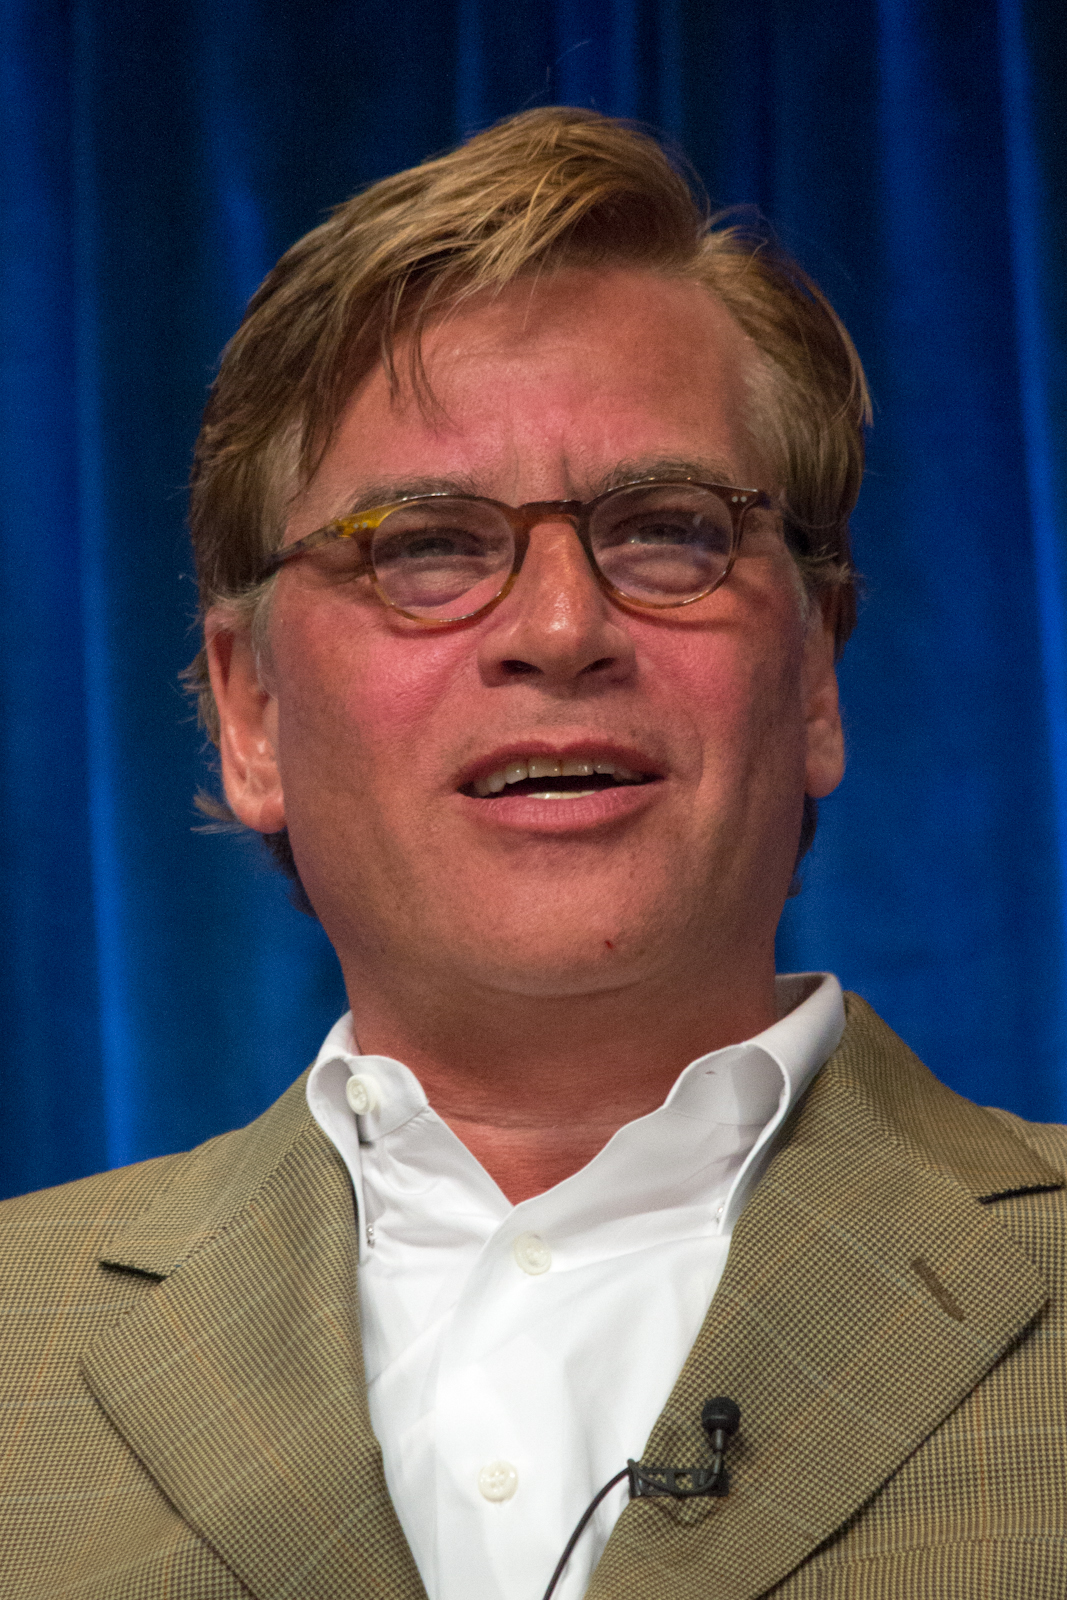 https://upload.wikimedia.org/wikipedia/commons/0/0a/Aaron_Sorkin_at_PaleyFest_2013.jpg